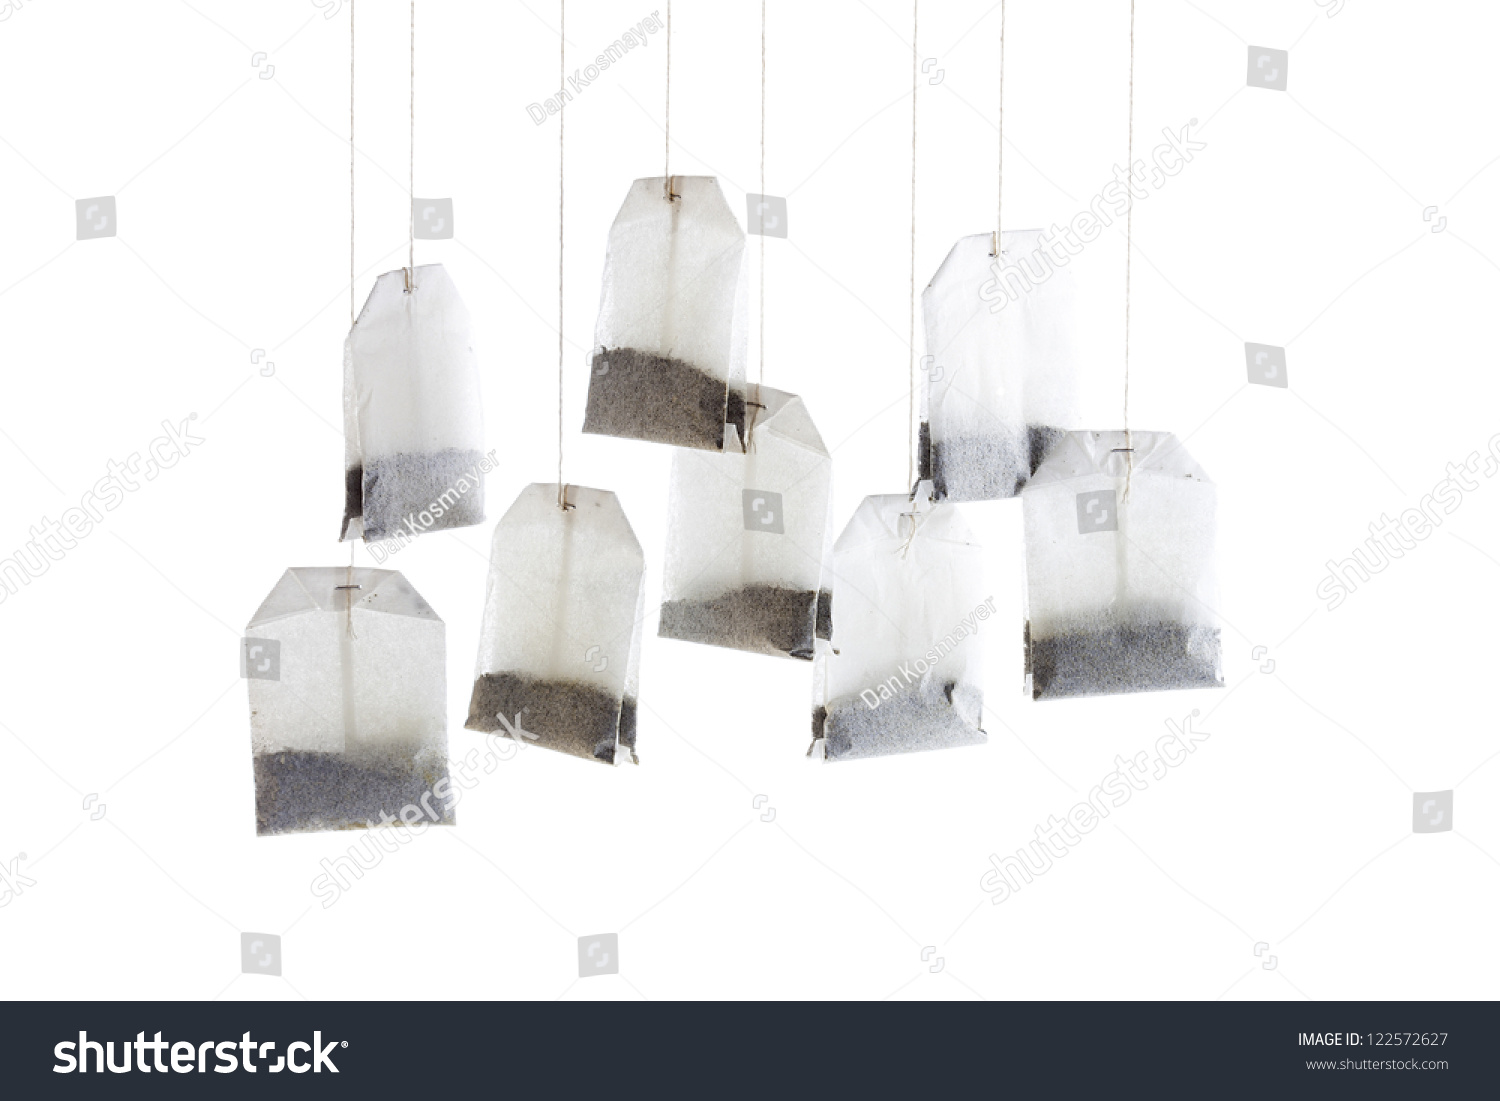 Hanging Tea Bags Closeup Image Stock Photo 122572627 ...